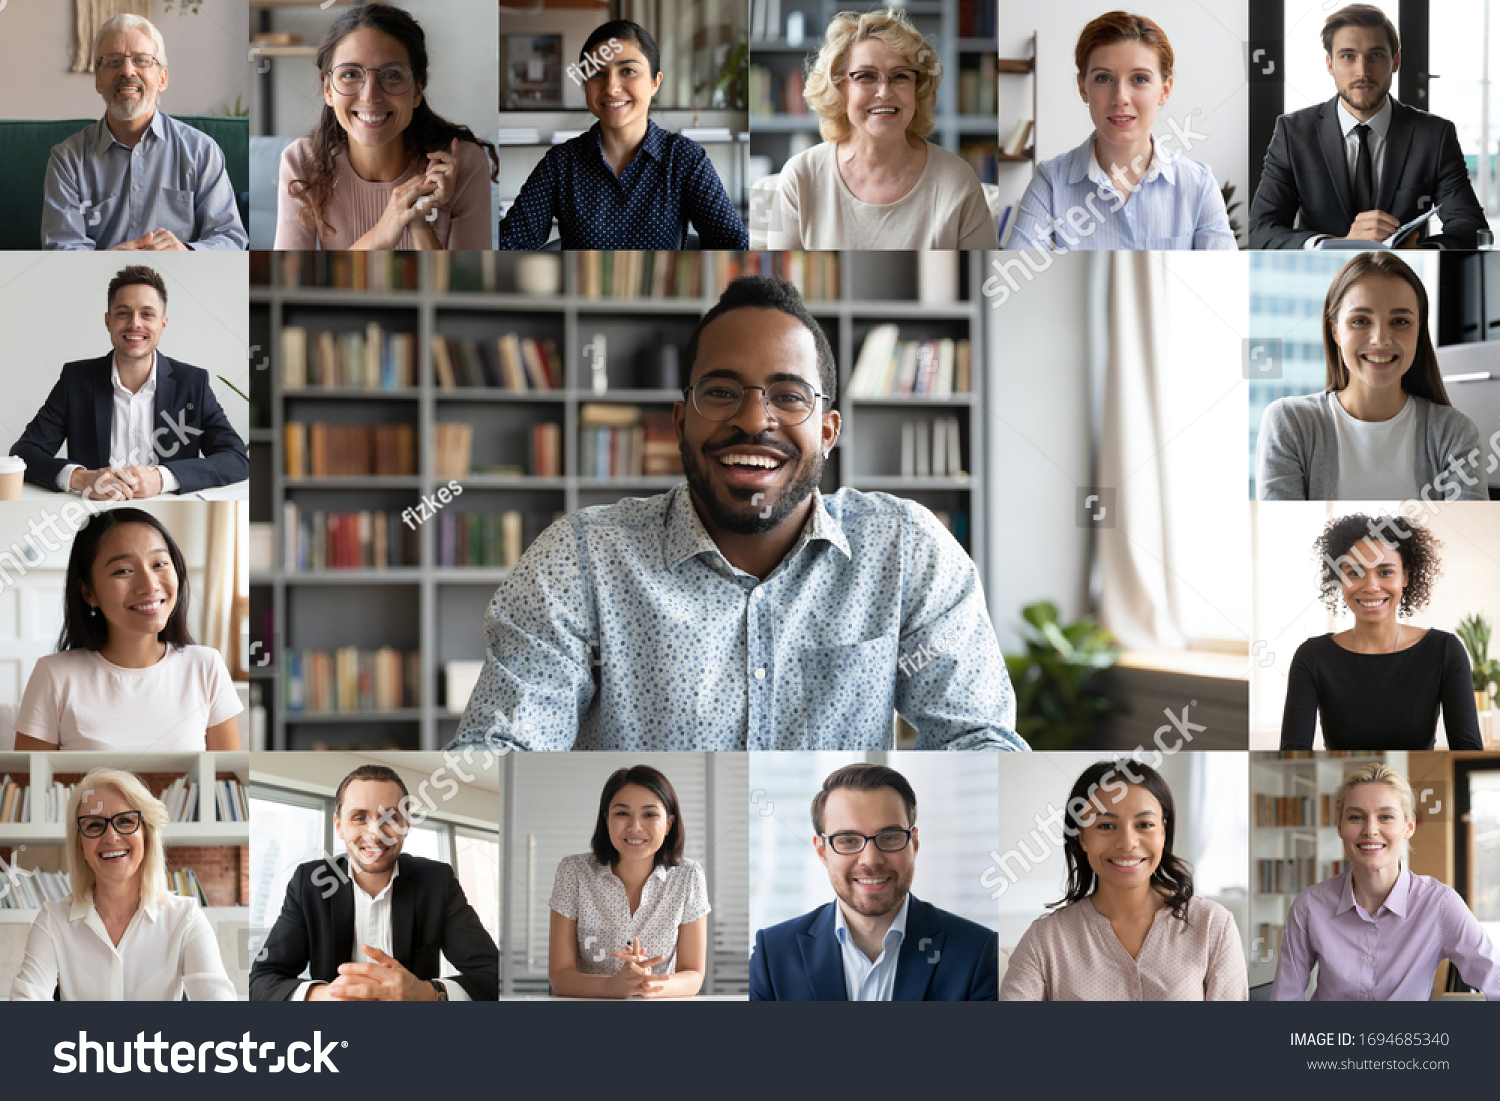 Many portraits faces of diverse young and aged people webcam view, while engaged in videoconference on-line meeting lead by african businessman leader. Group video call application easy usage concept #1694685340